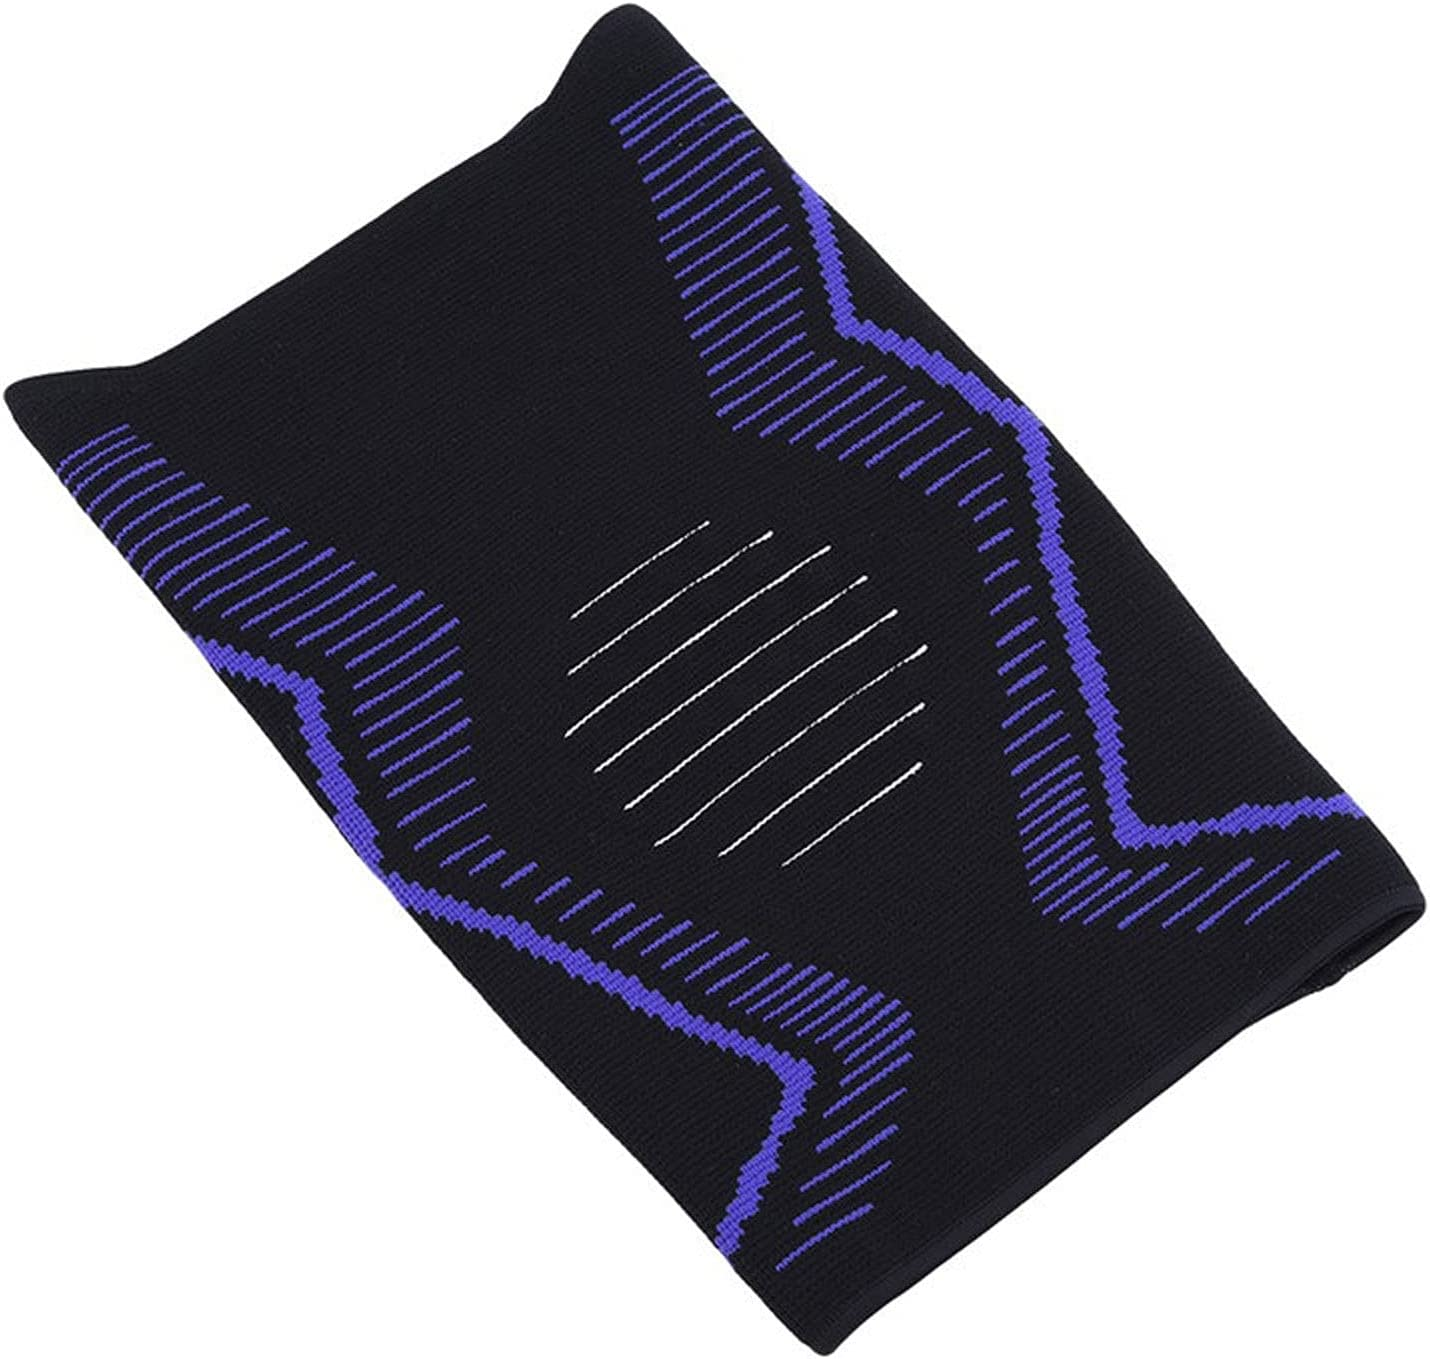 New products world's highest quality popular Nicwagrl Knee Brace Pads Trust Sleeves Cycling Fitness S Running